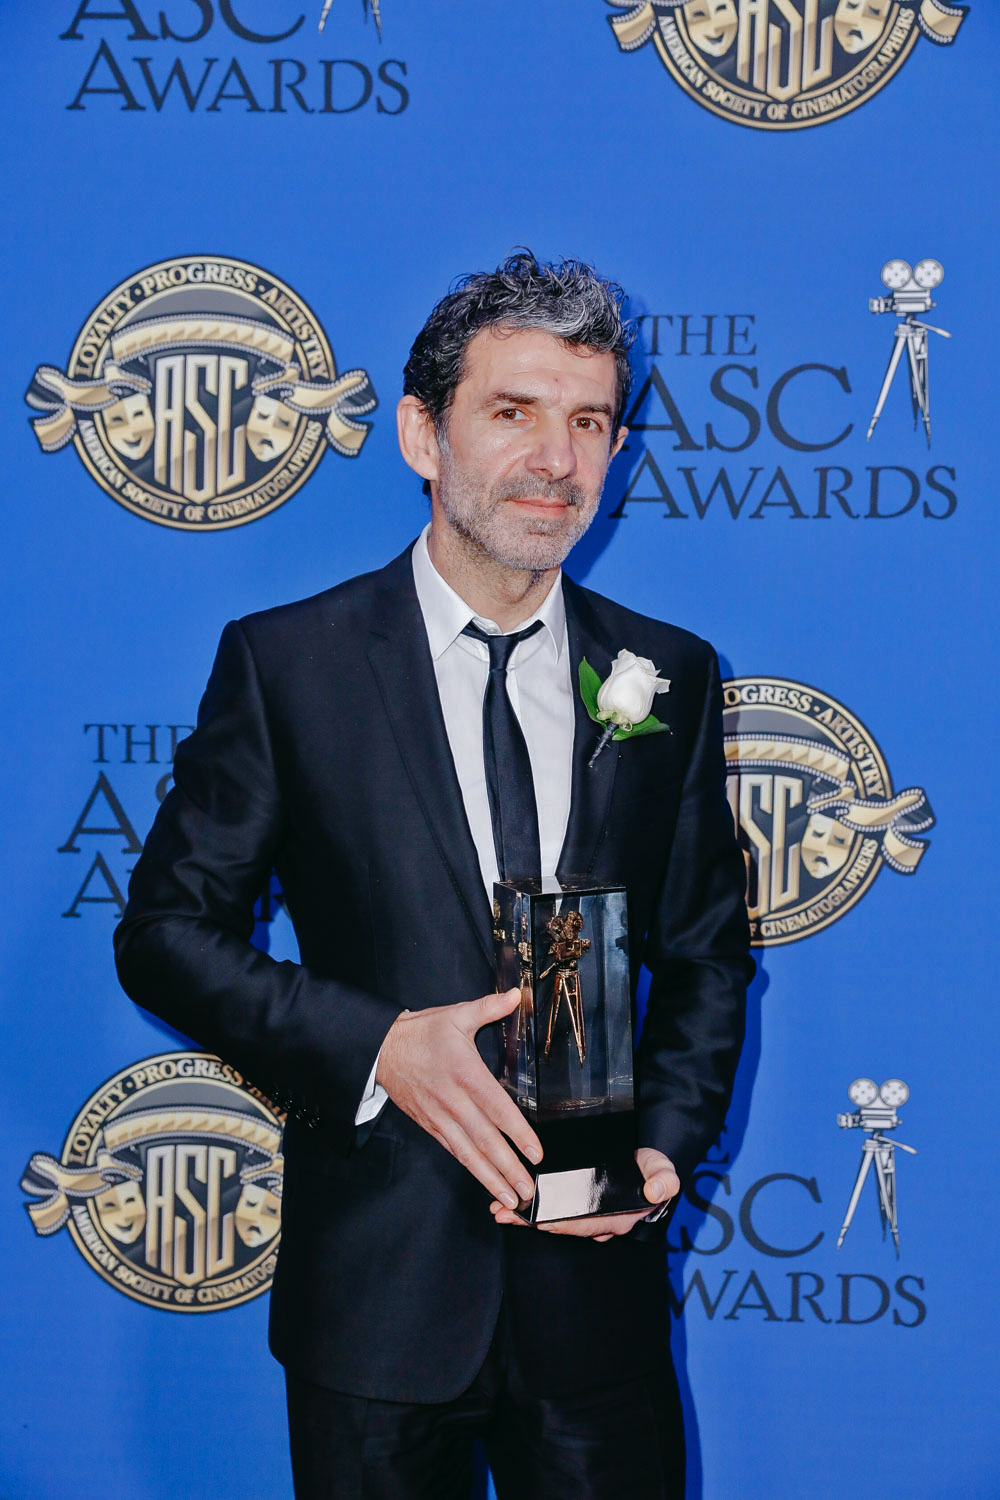 Igor Martinovic, who earned the ASC Award in this category